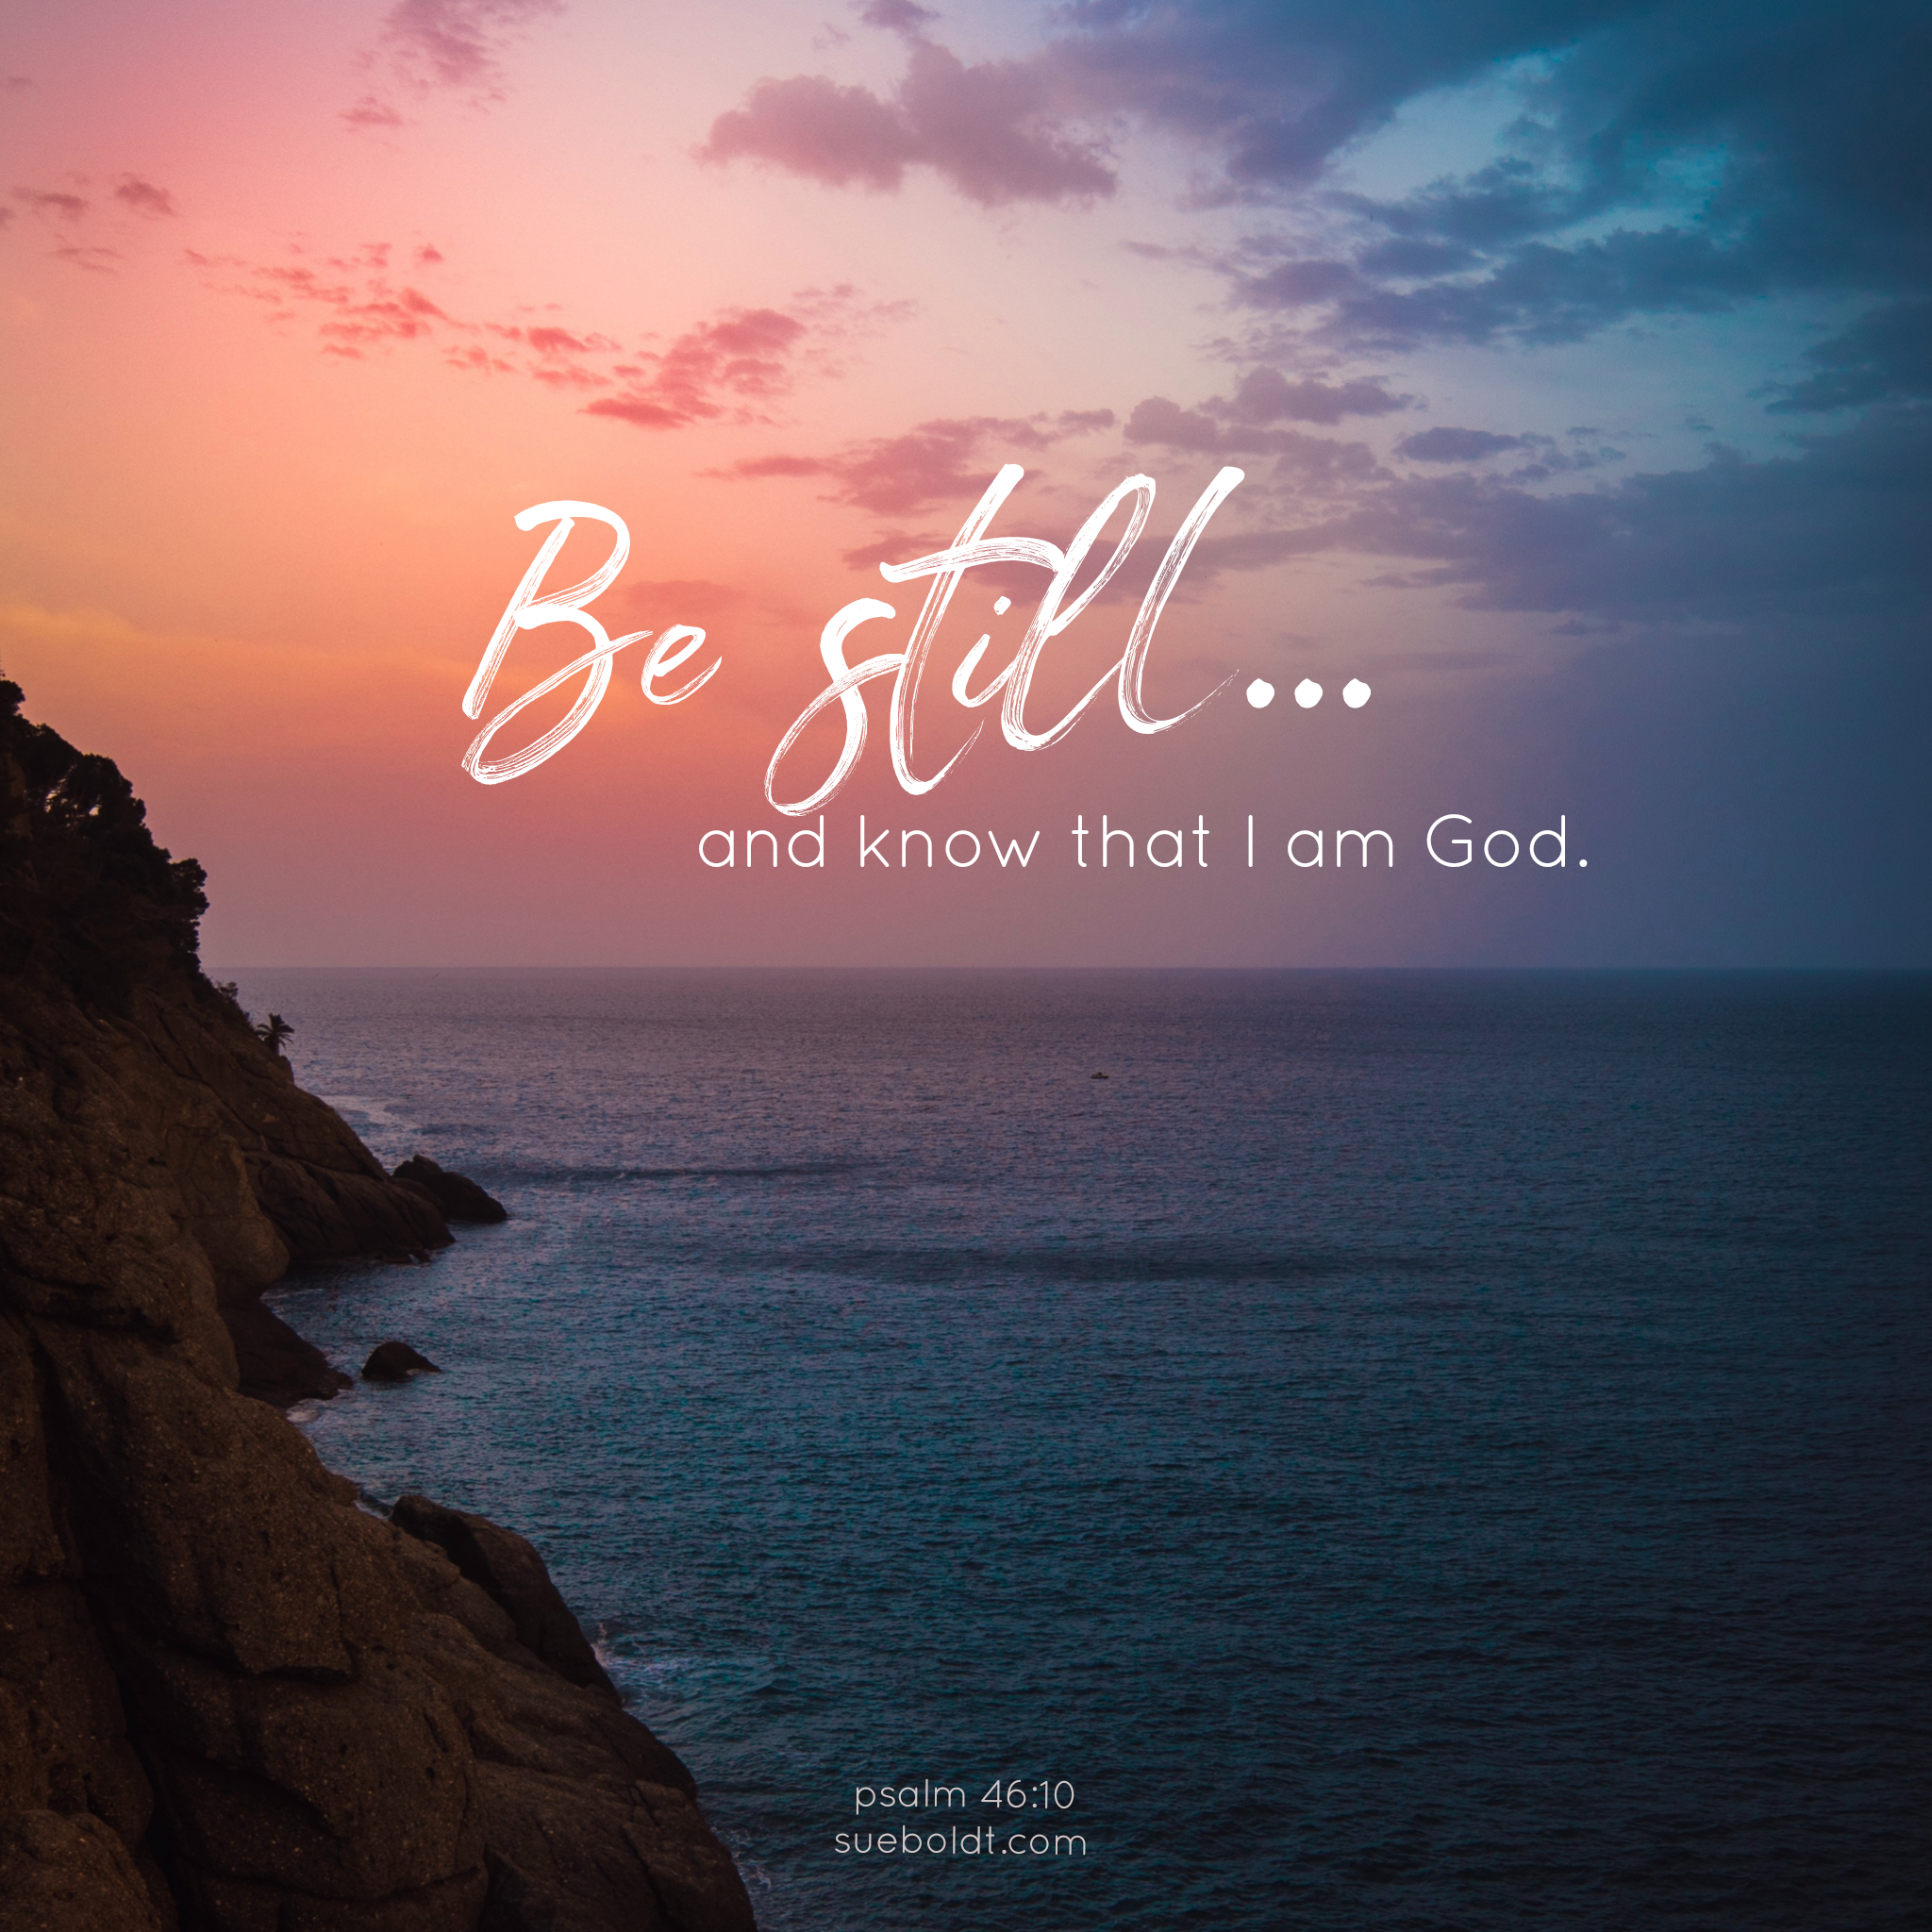 Be Still.1.png